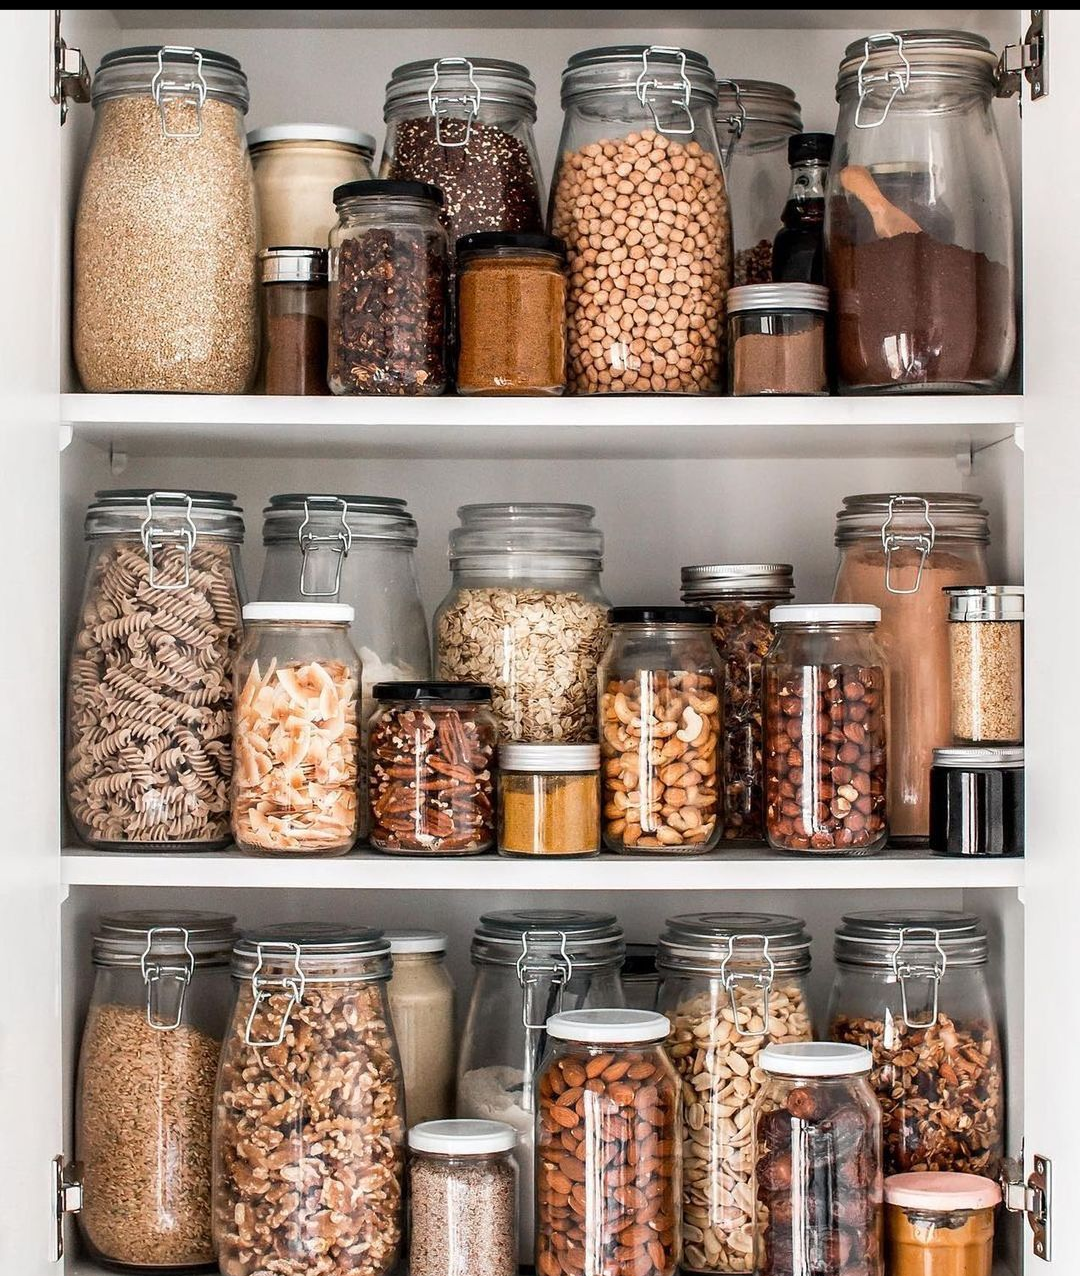 How Consumers Can Become Zero-waste